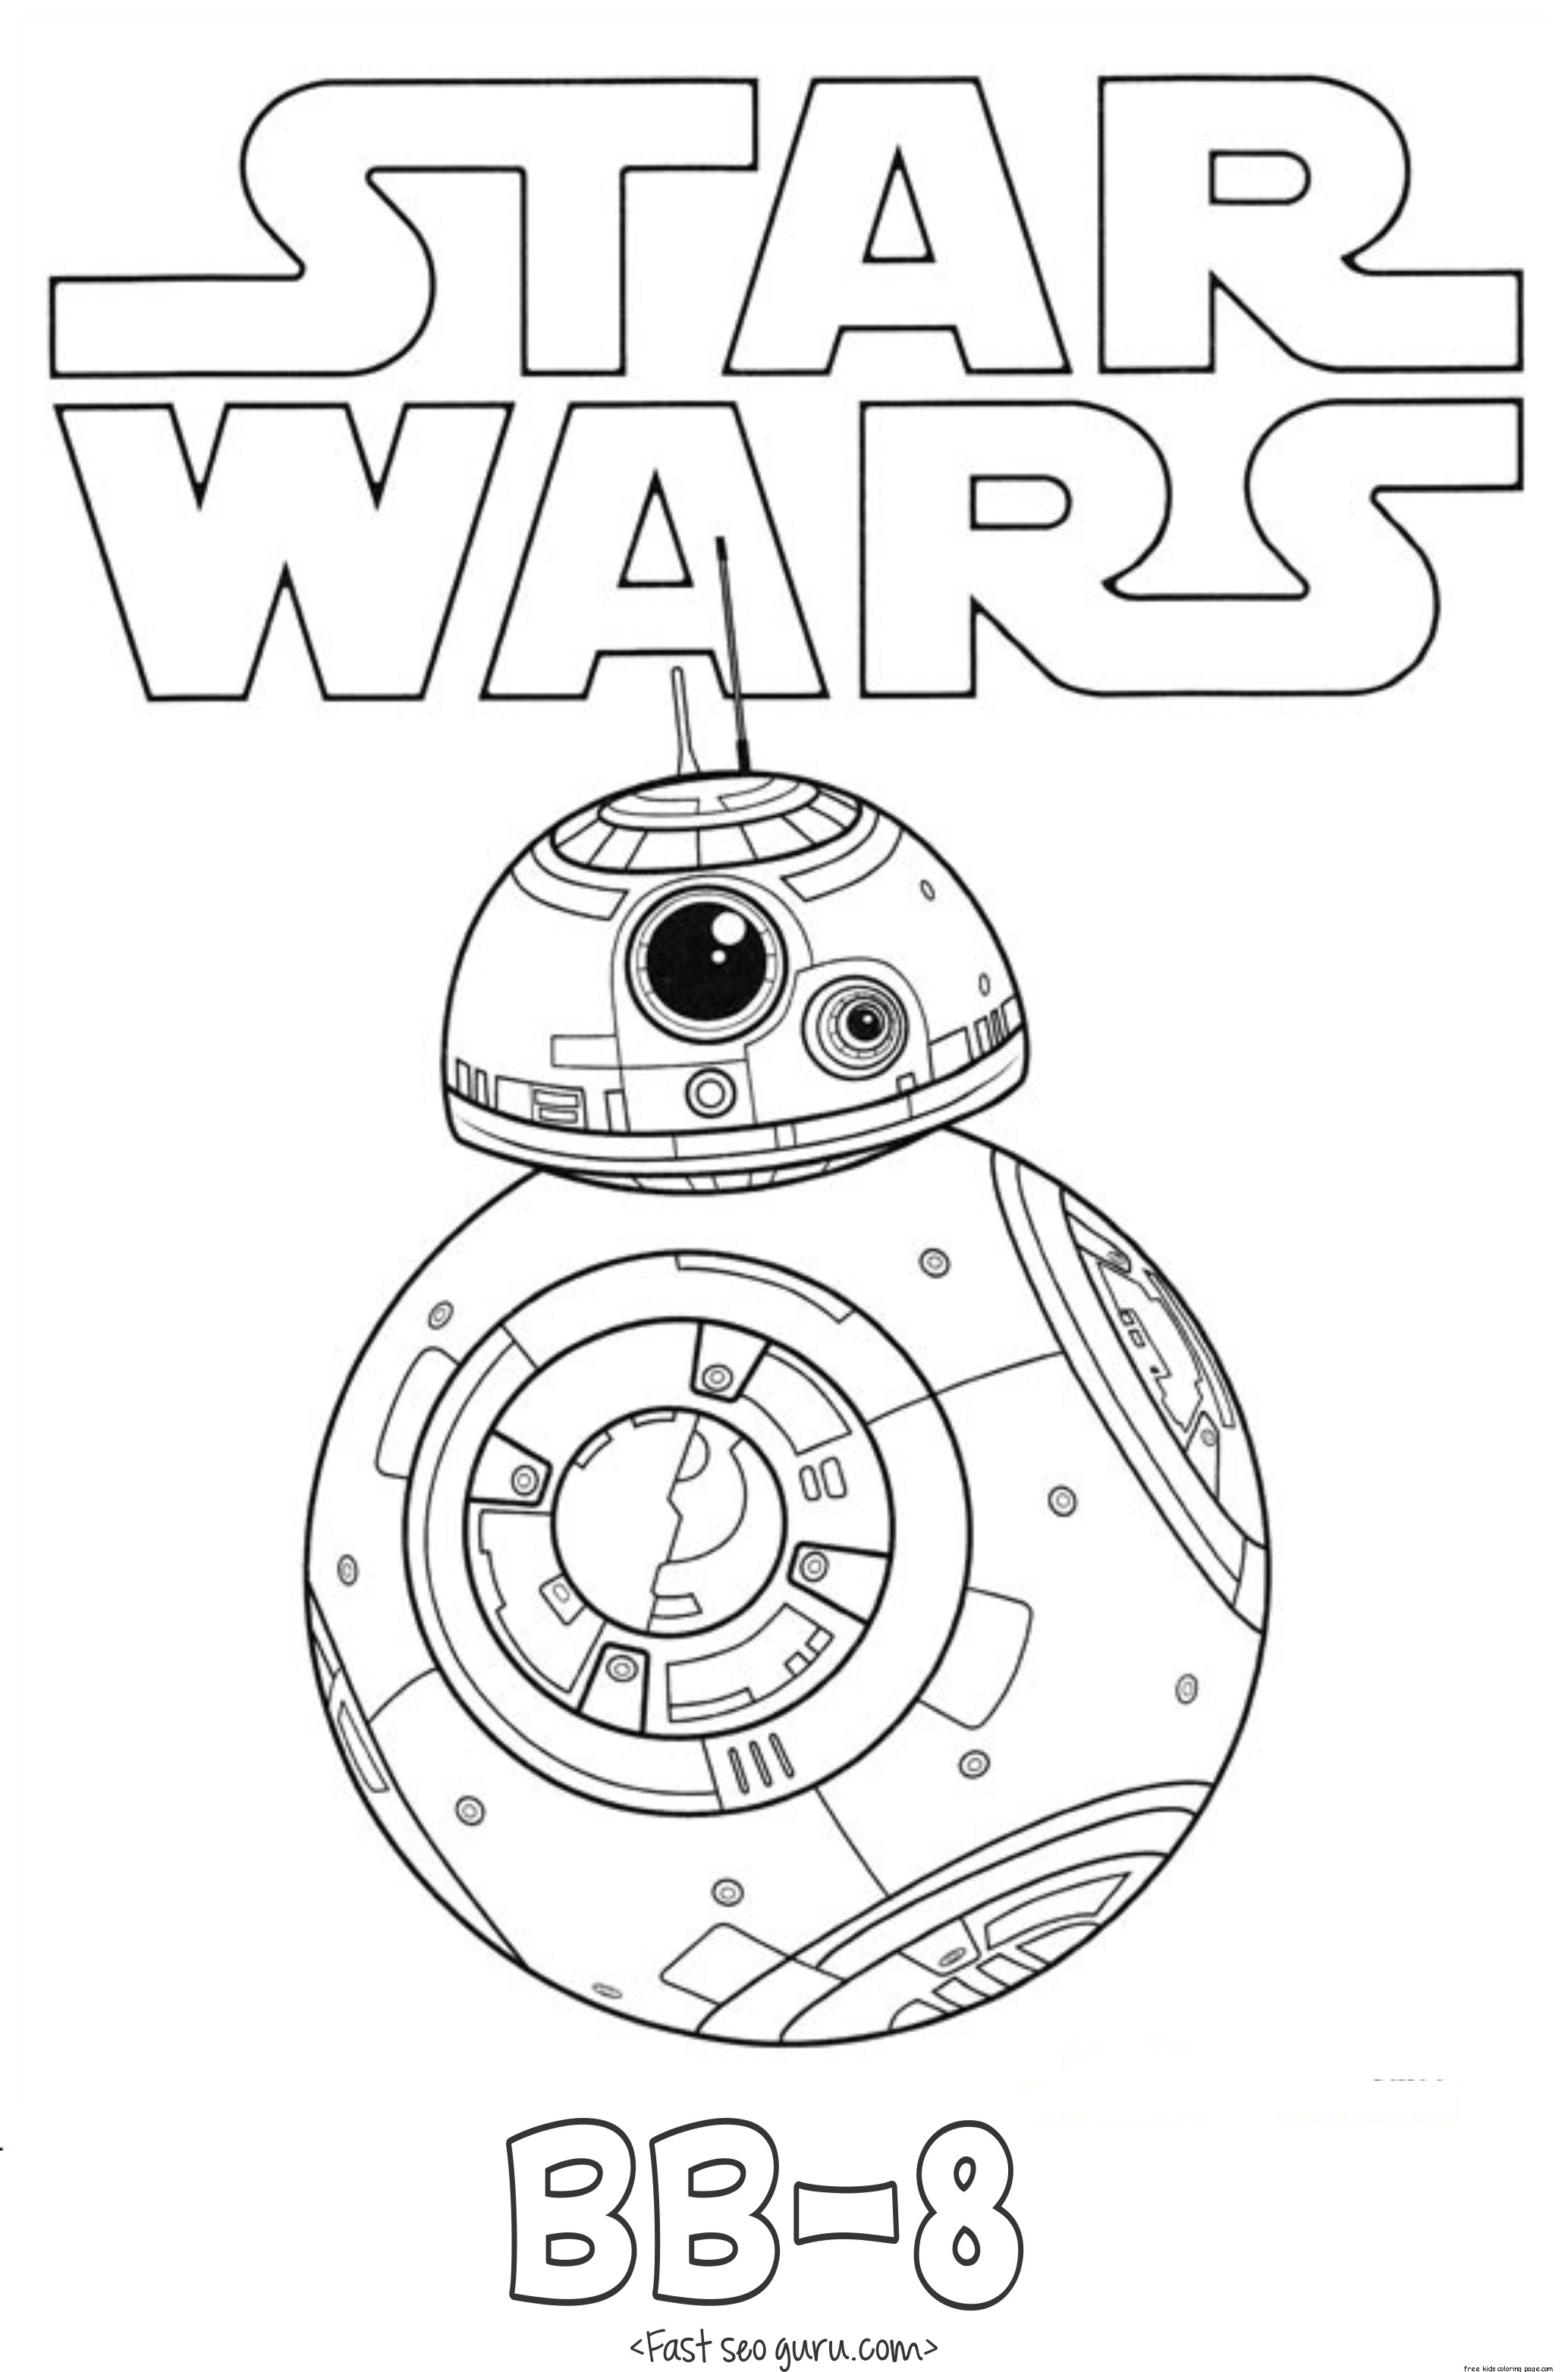 star wars coloring pages to print star wars to download star wars kids coloring pages wars pages print to star coloring